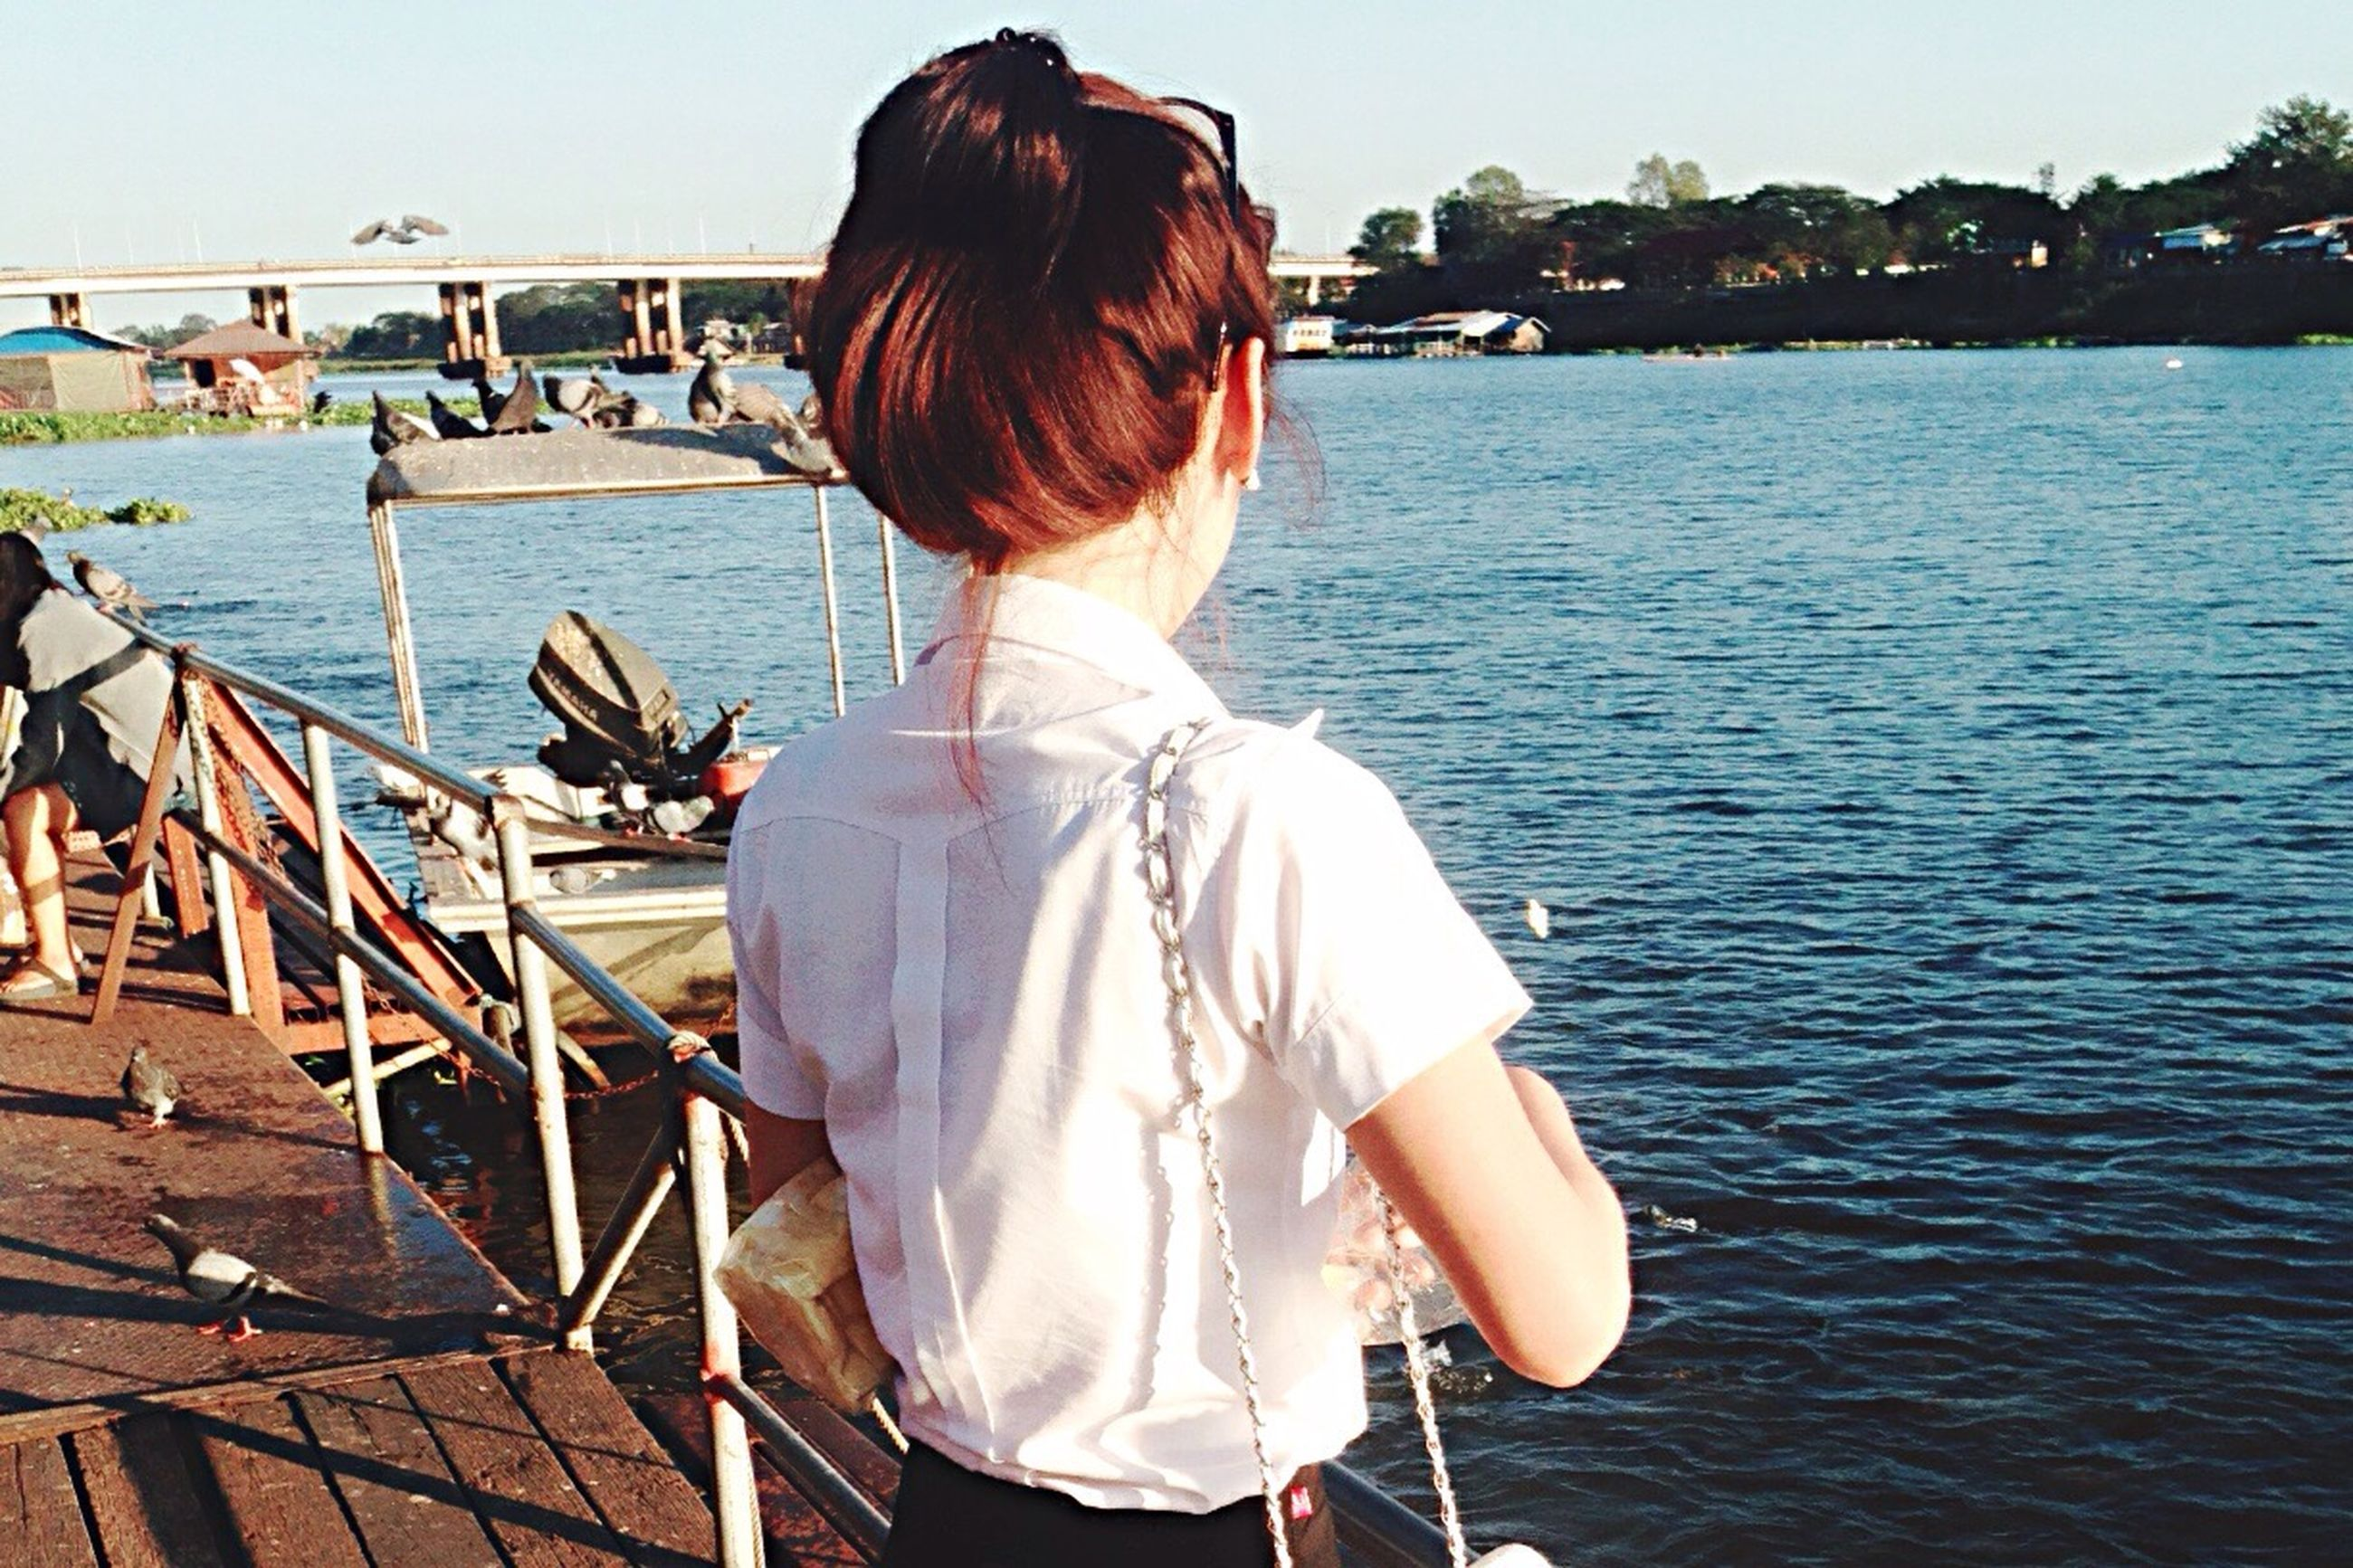 water, rear view, lifestyles, leisure activity, sea, casual clothing, long hair, young adult, person, sitting, standing, full length, three quarter length, young women, clear sky, railing, lake